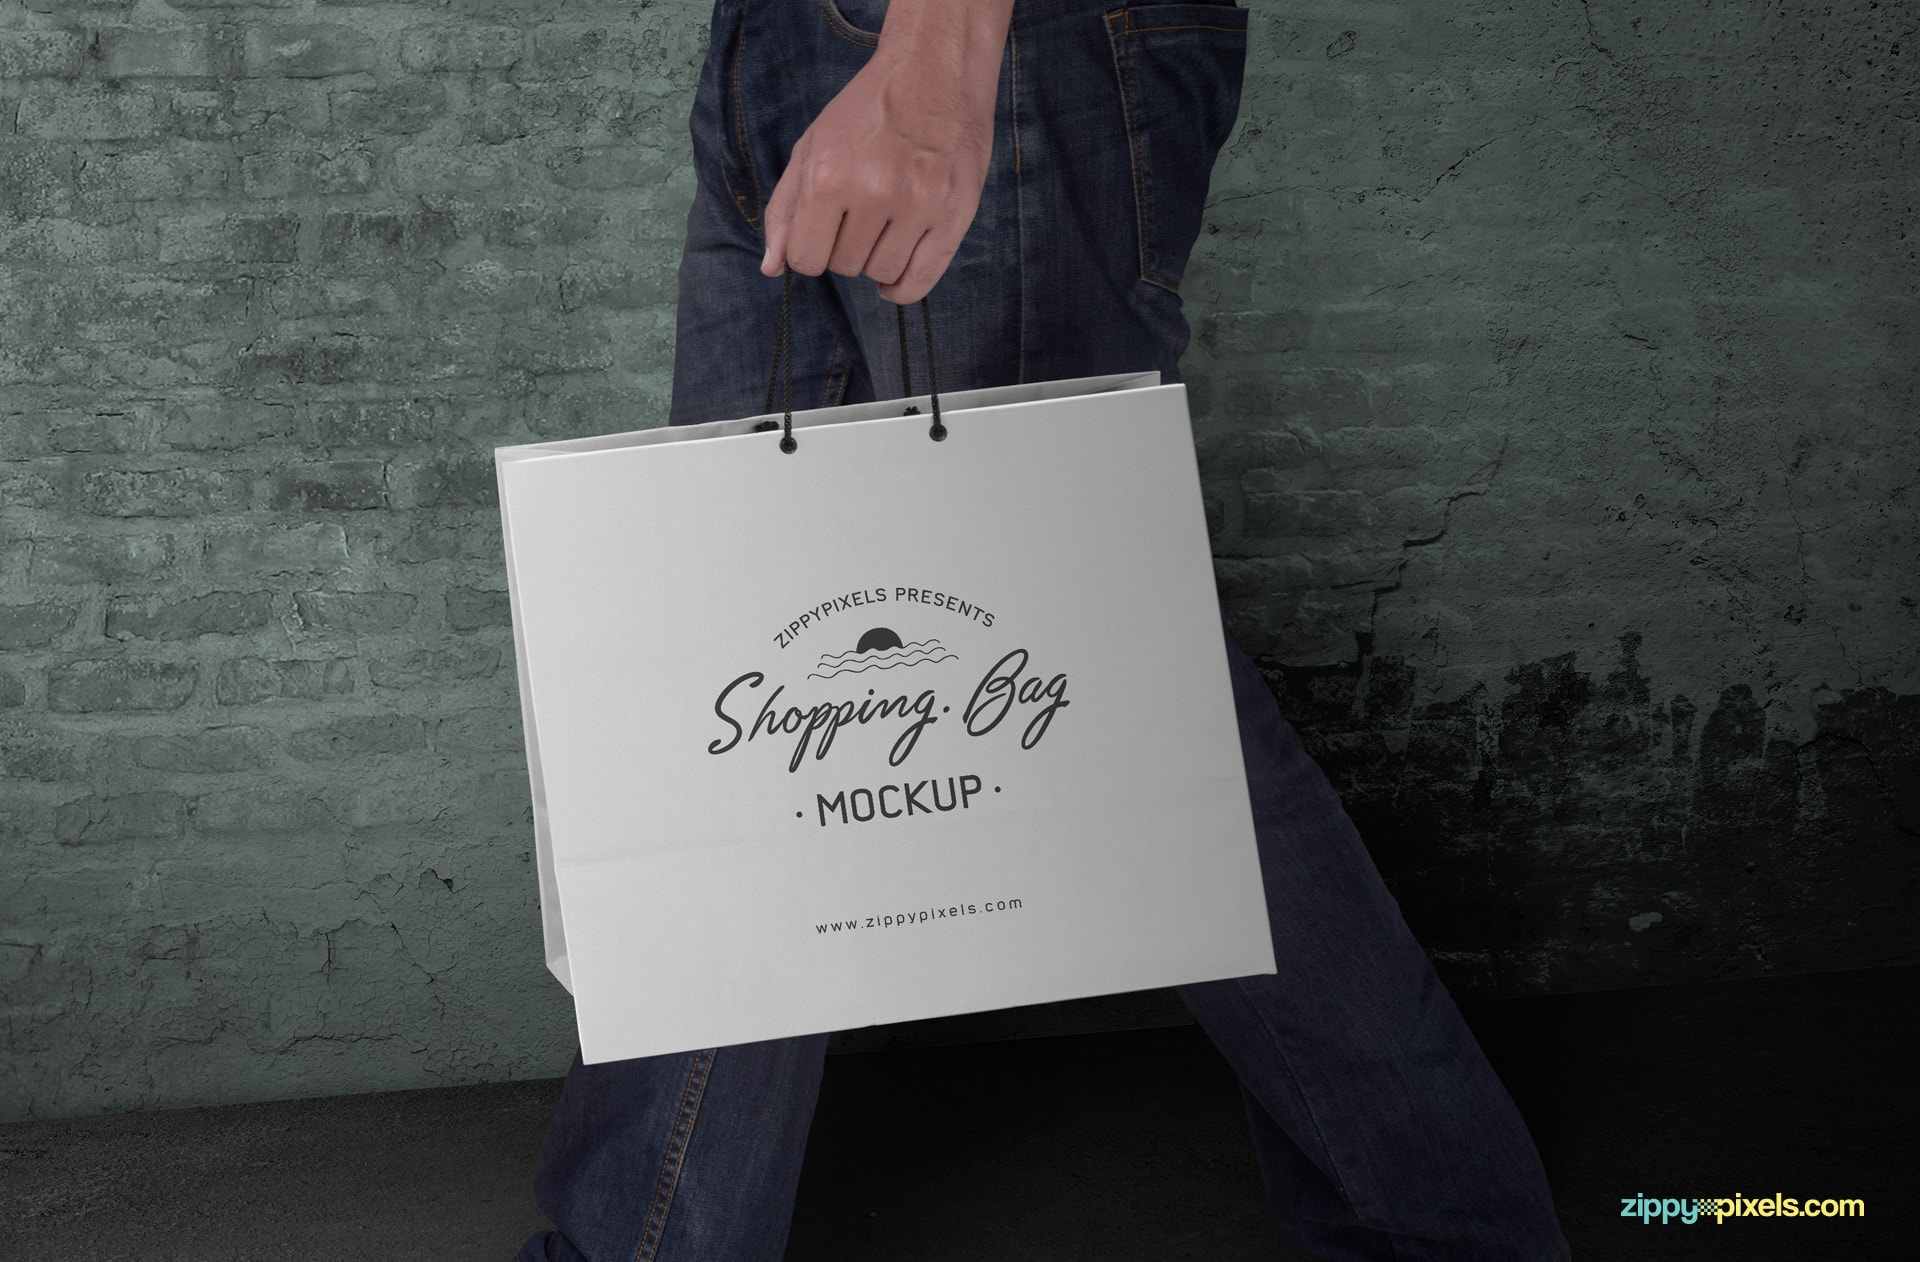 free shopping bag mockup PSD for branding